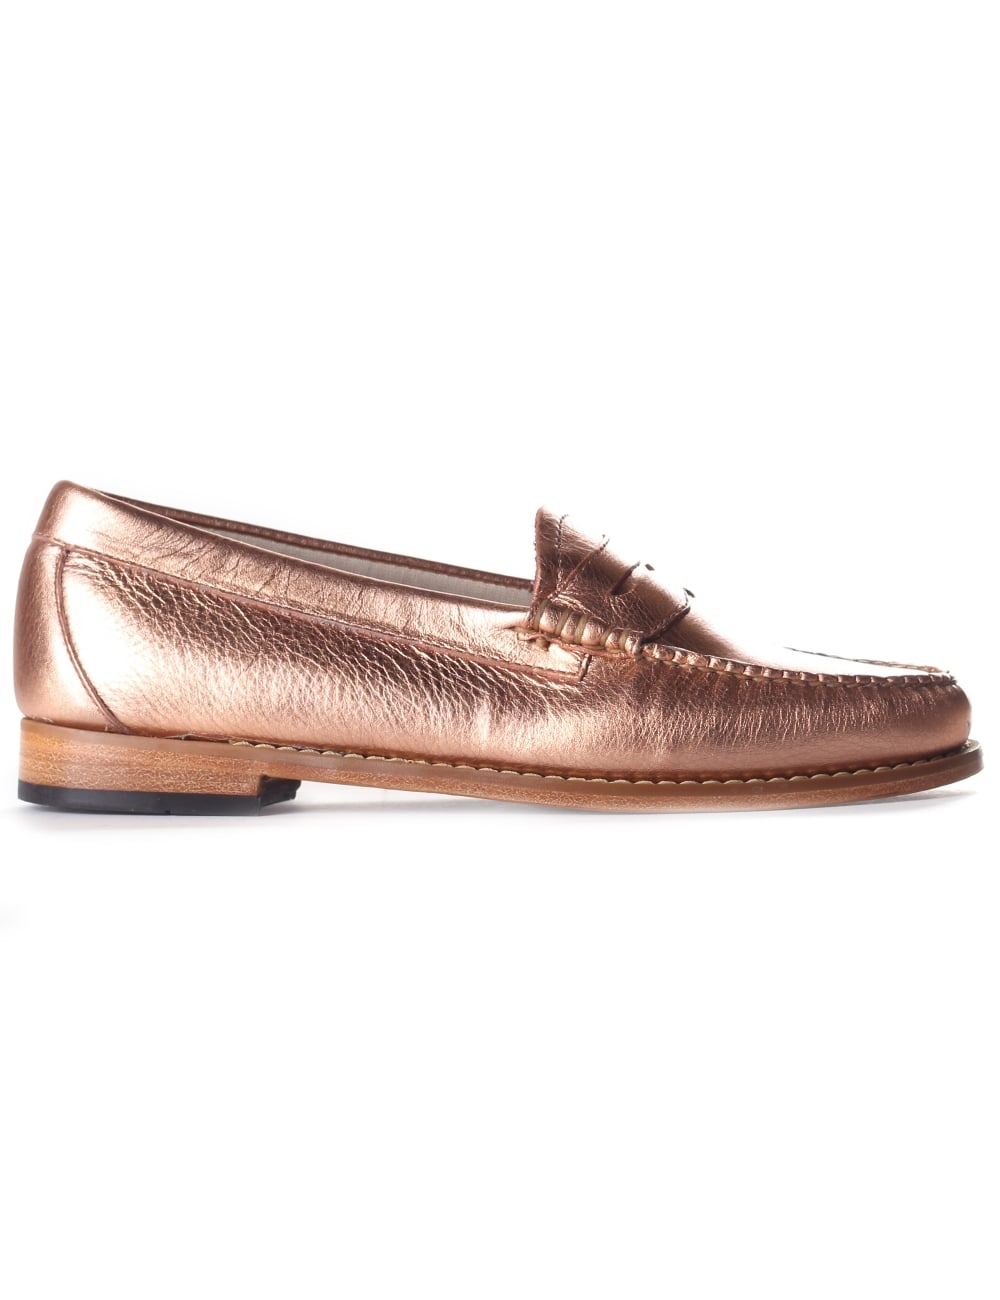 ff926406991 G.H. Bass Weejuns Women s Penny Metal Loafer